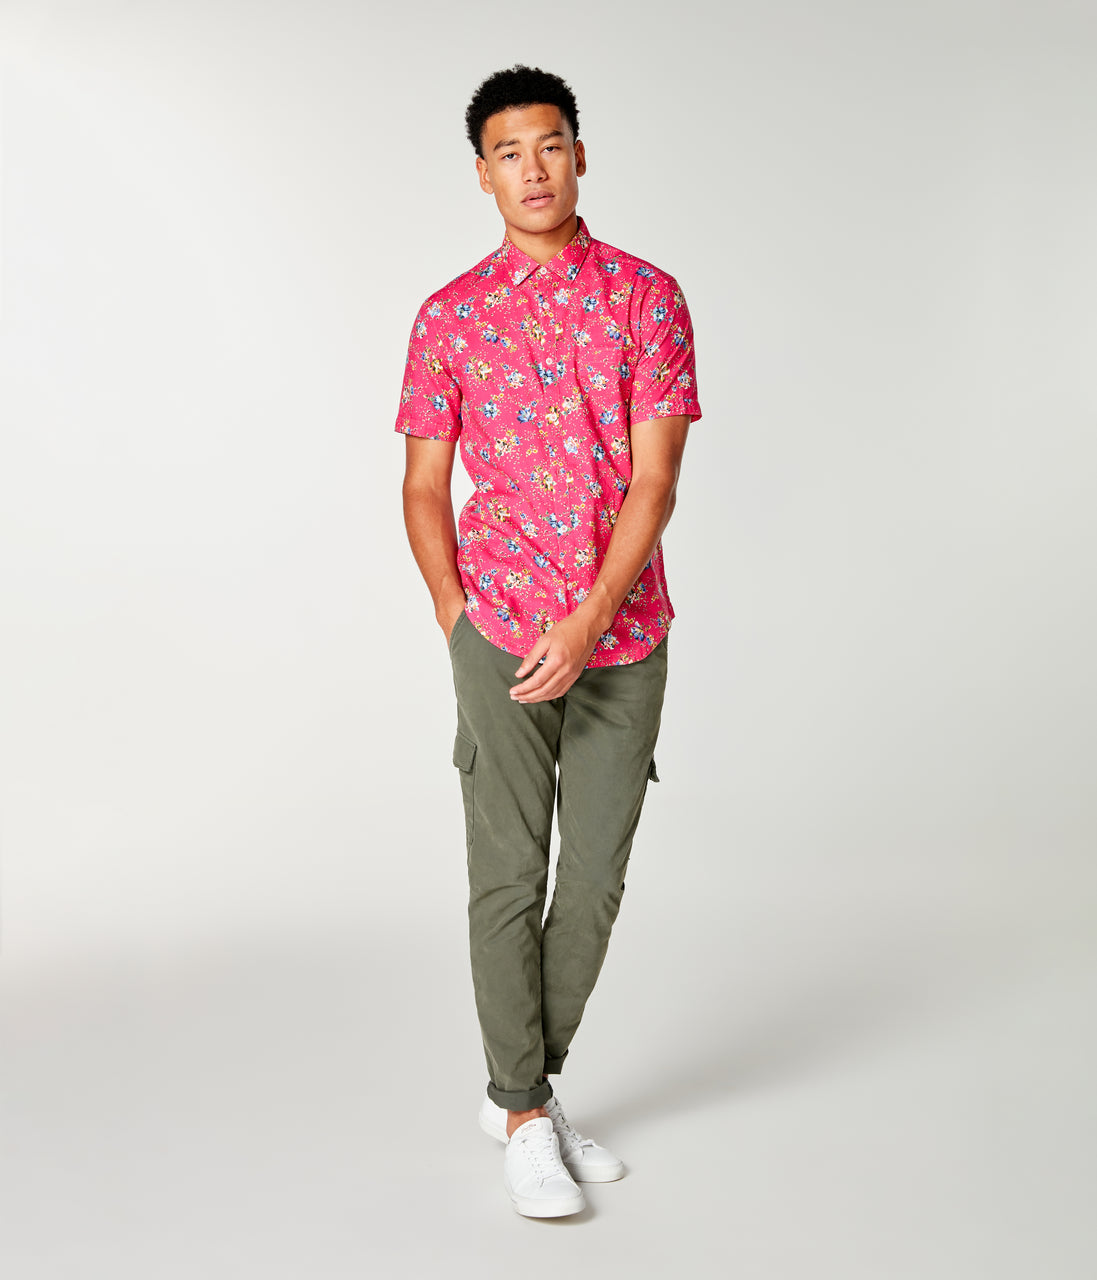 Woven On-Point Shirt - Jazzy Monarch Floral - Good Man Brand - On-Point Print Shirt Short Sleeve - Jazzy Monarch Floral